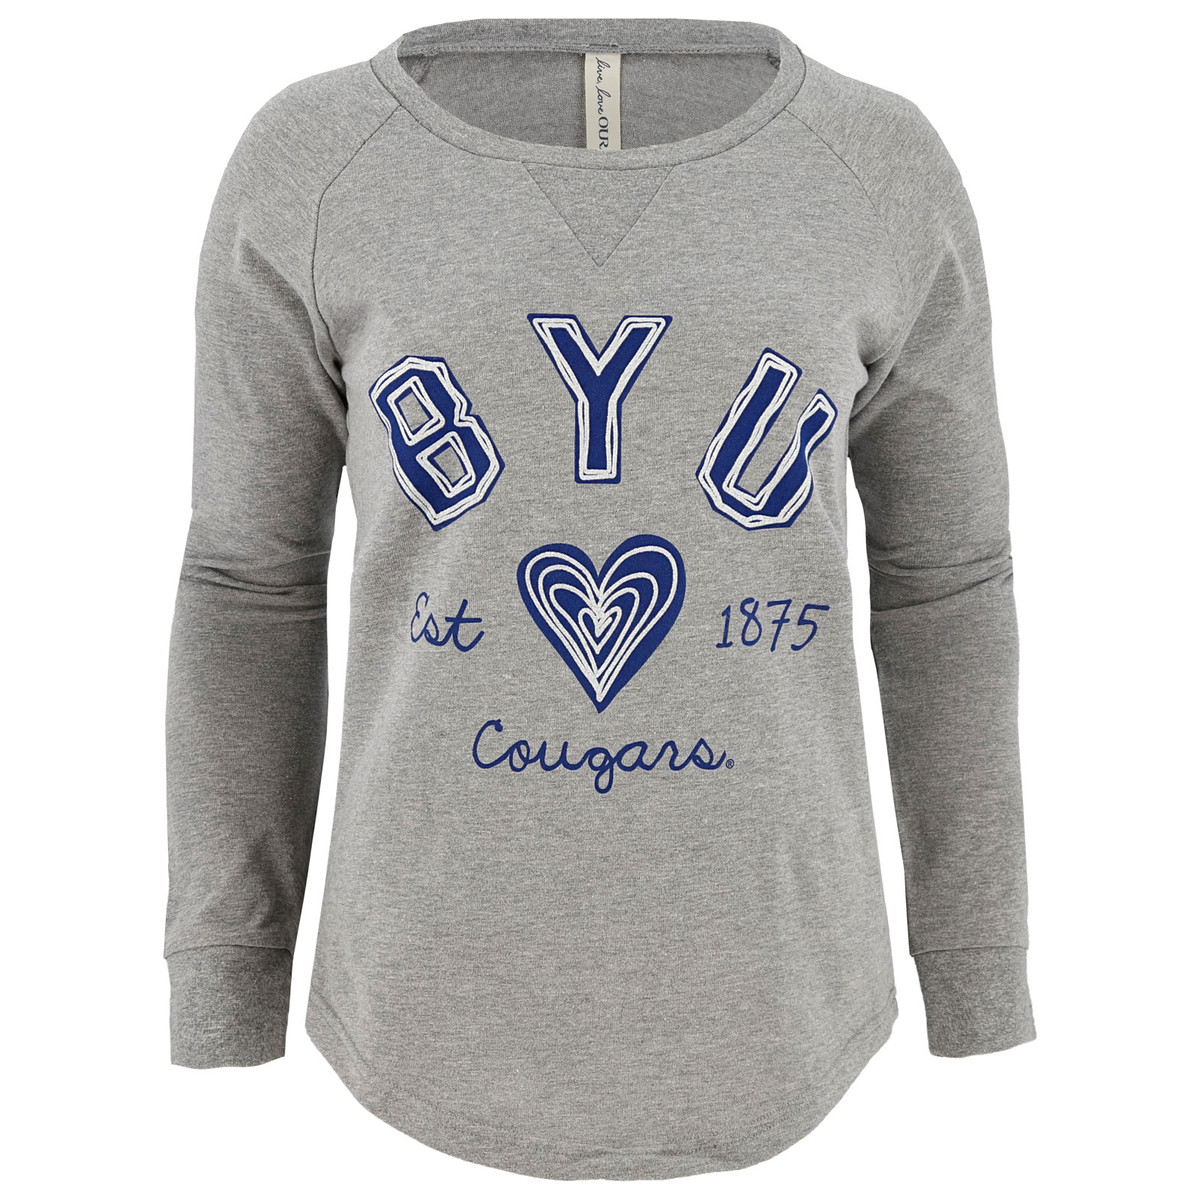 15f3e141 Women's BYU Cougars Long Sleeve Shirt - Ouray